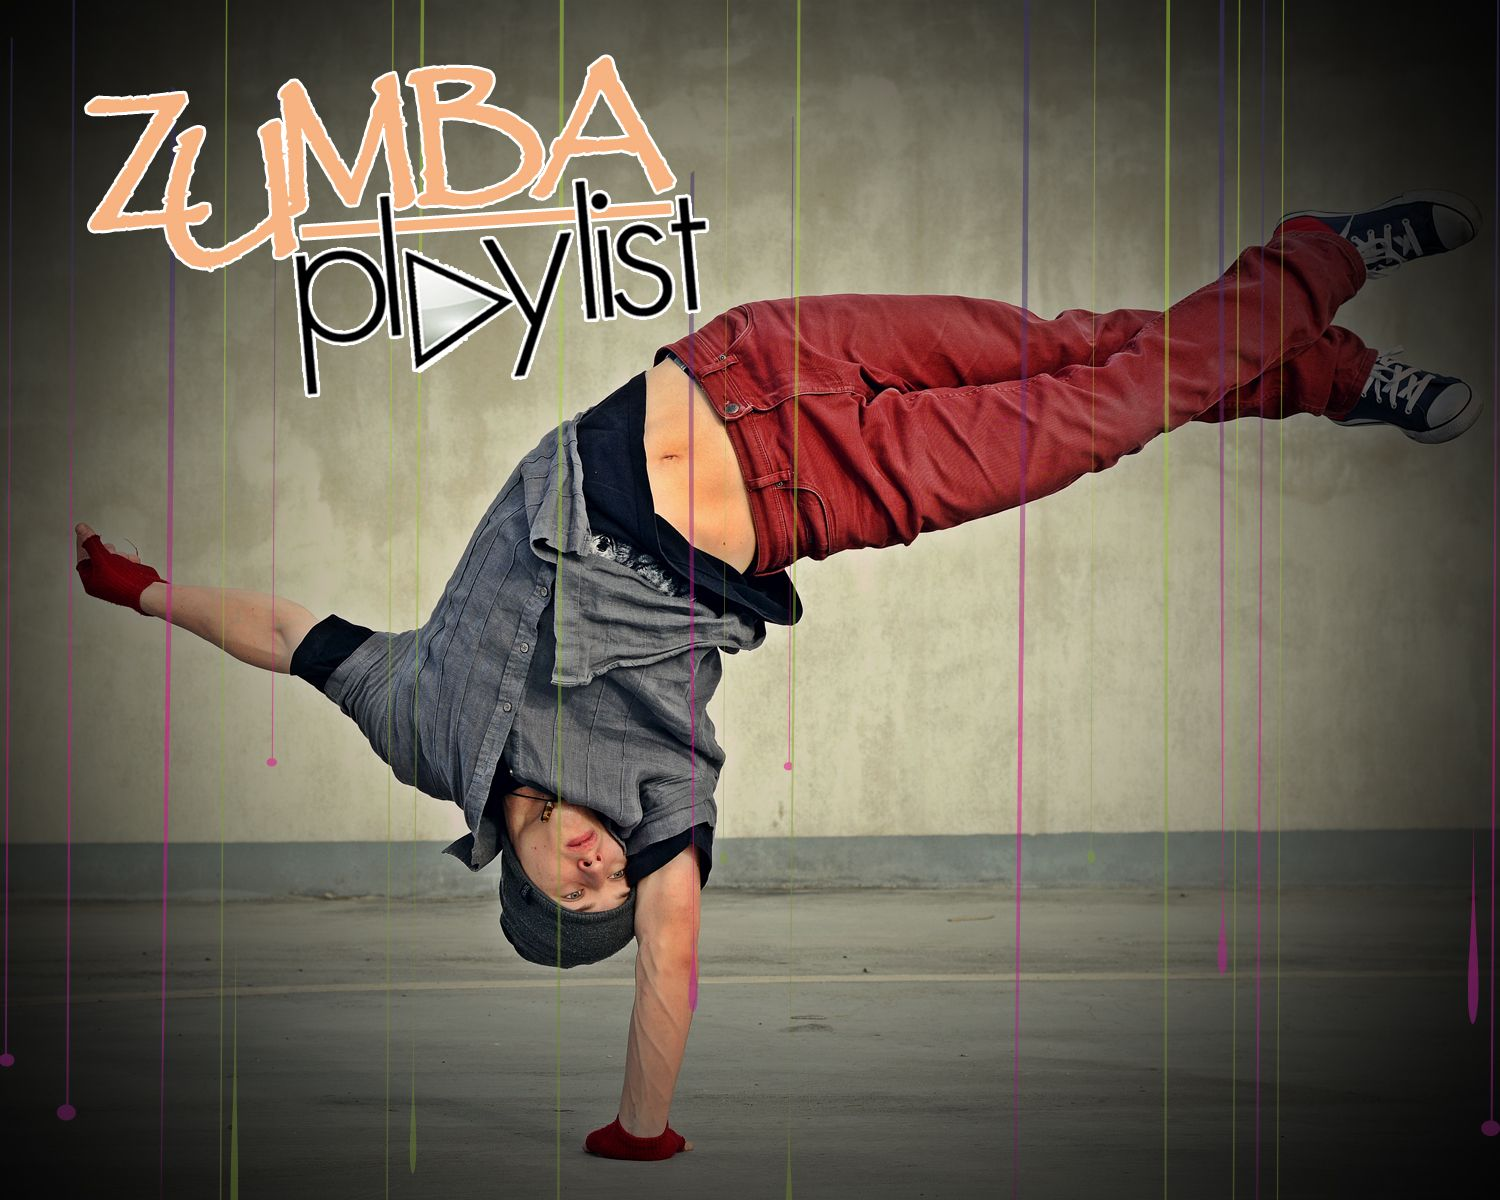 Instead of losing count of your reps, how about losing yourself in the music?   Read more: http://www.fitnessrepublic.com/playlist/playlist-for-zumba-2nd-june-to-9th-june-2014.html